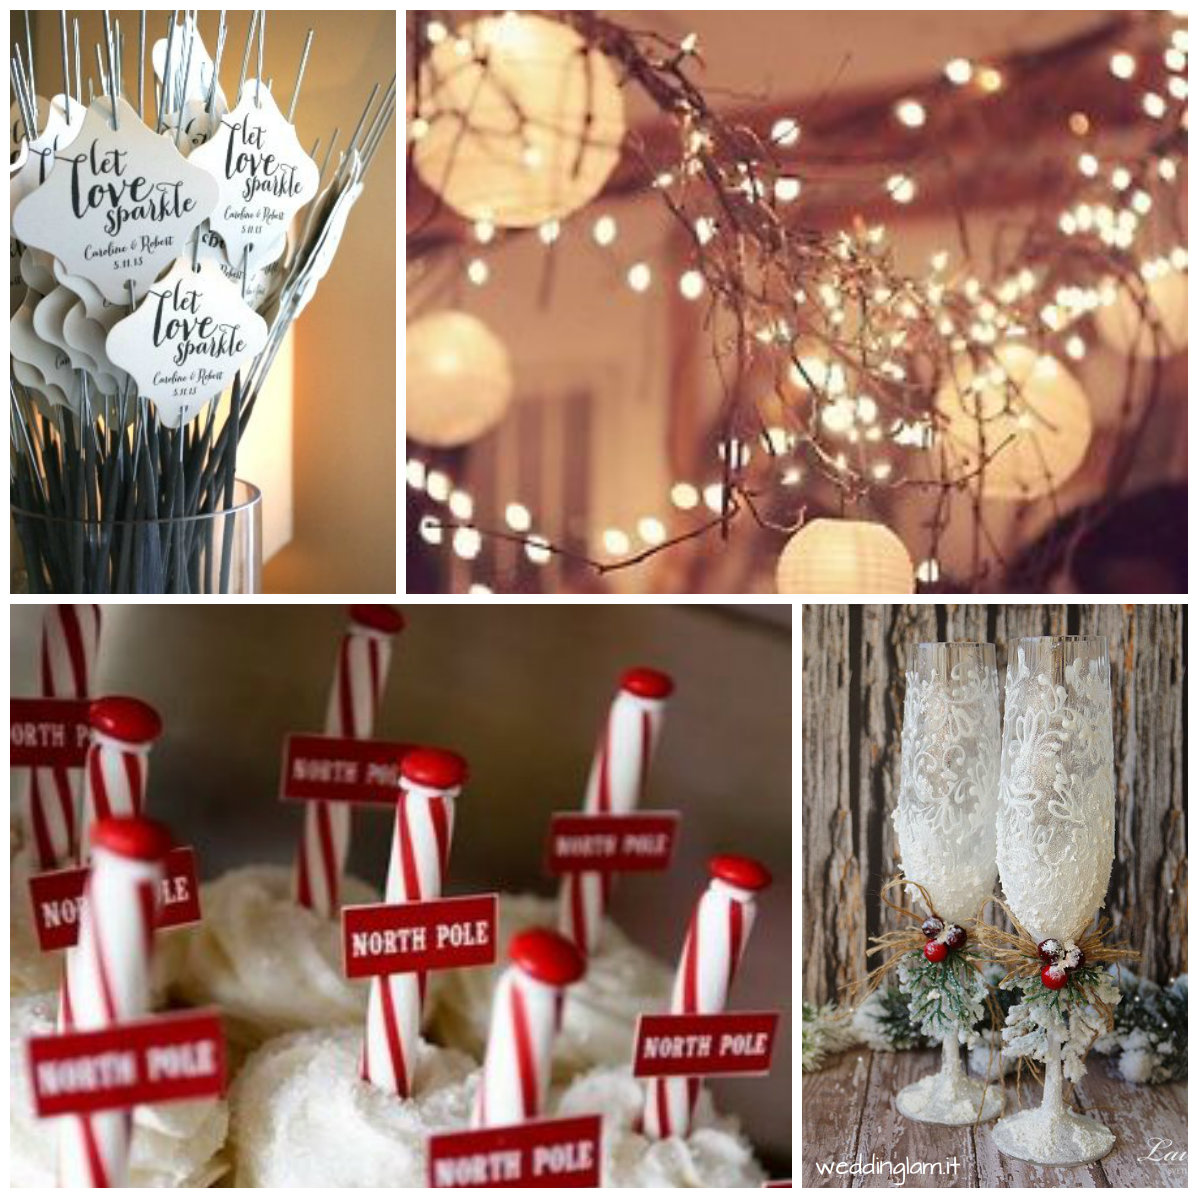 Decorations for Christmas wedding